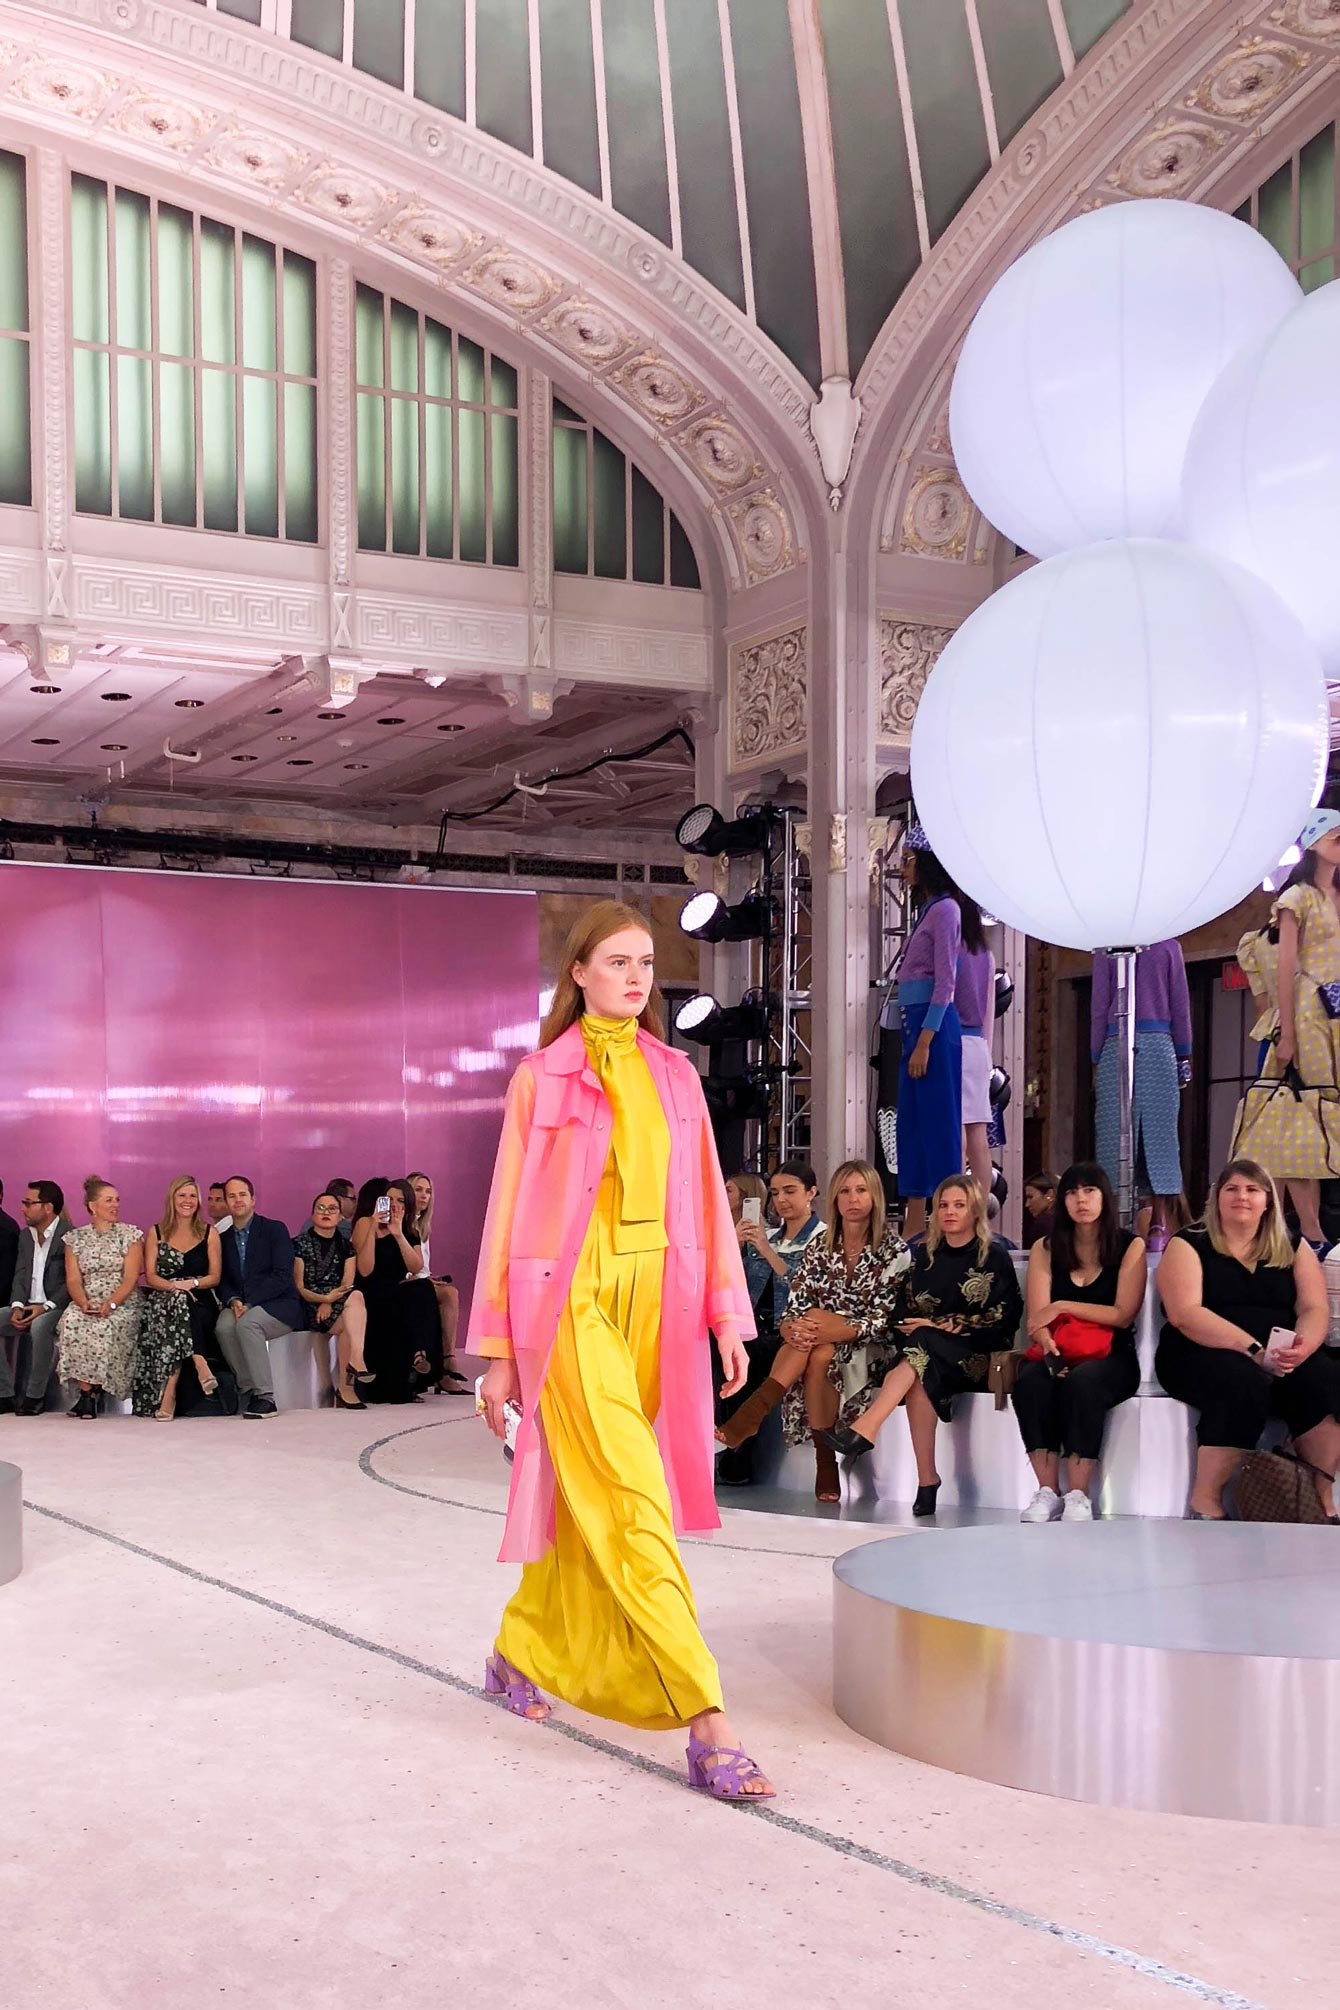 kate spade Pink Yellow Outfit Spring 2019